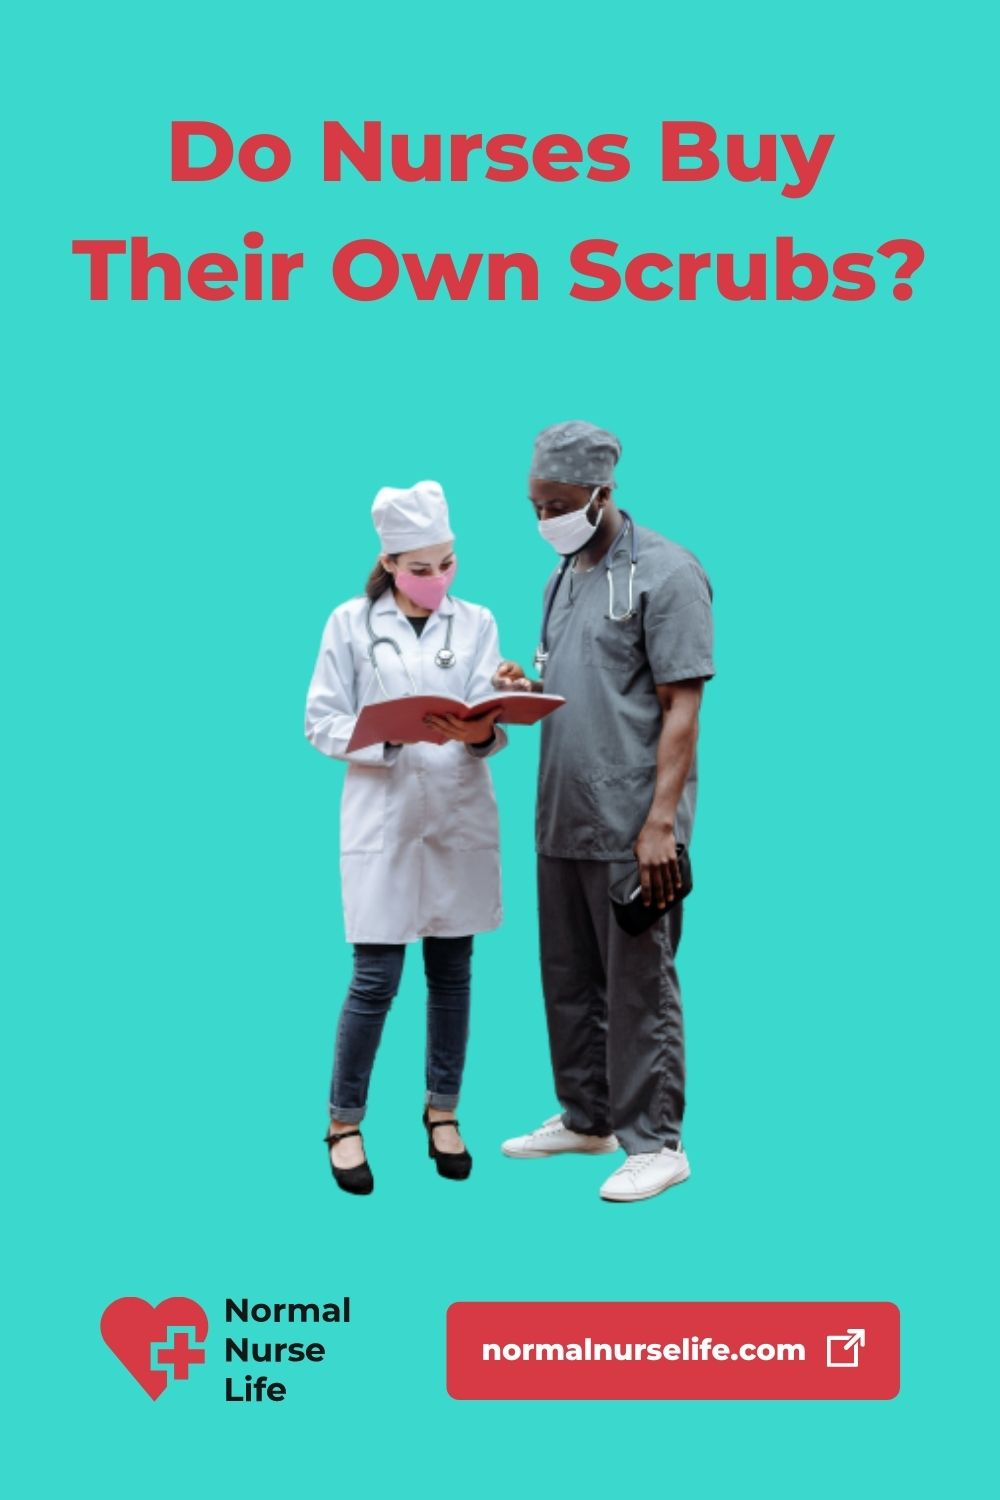 Do Nurses Buy Their Own Scrubs or Not